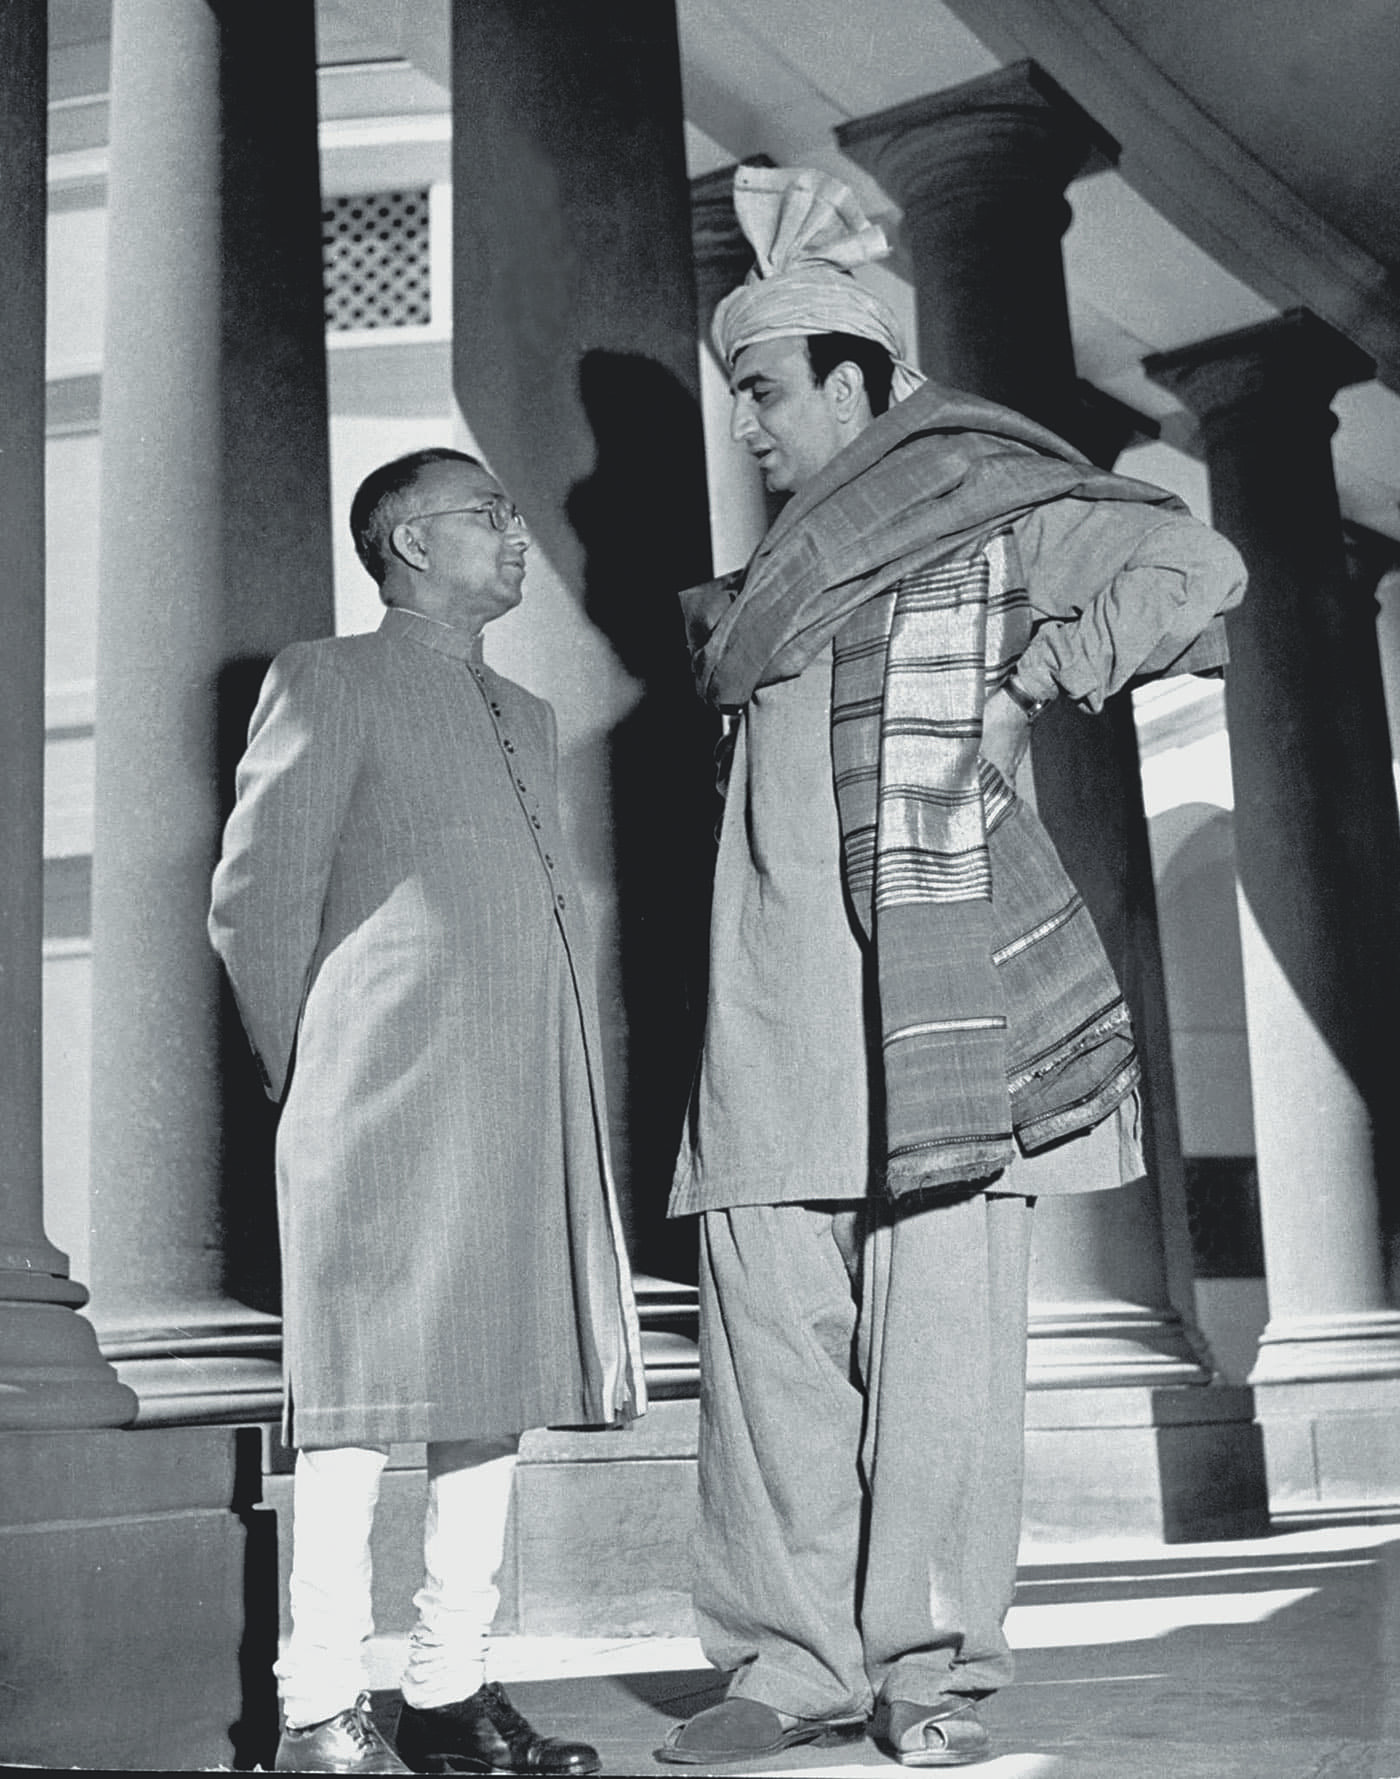 Khan Abdul Ghani Khan (right) converses with Benegal Shiva Rao, a leading journalist and politician, in front of Council House in Delhi. — Excerpted with permission from Witness to Life and Freedom, Roli Books, Delhi